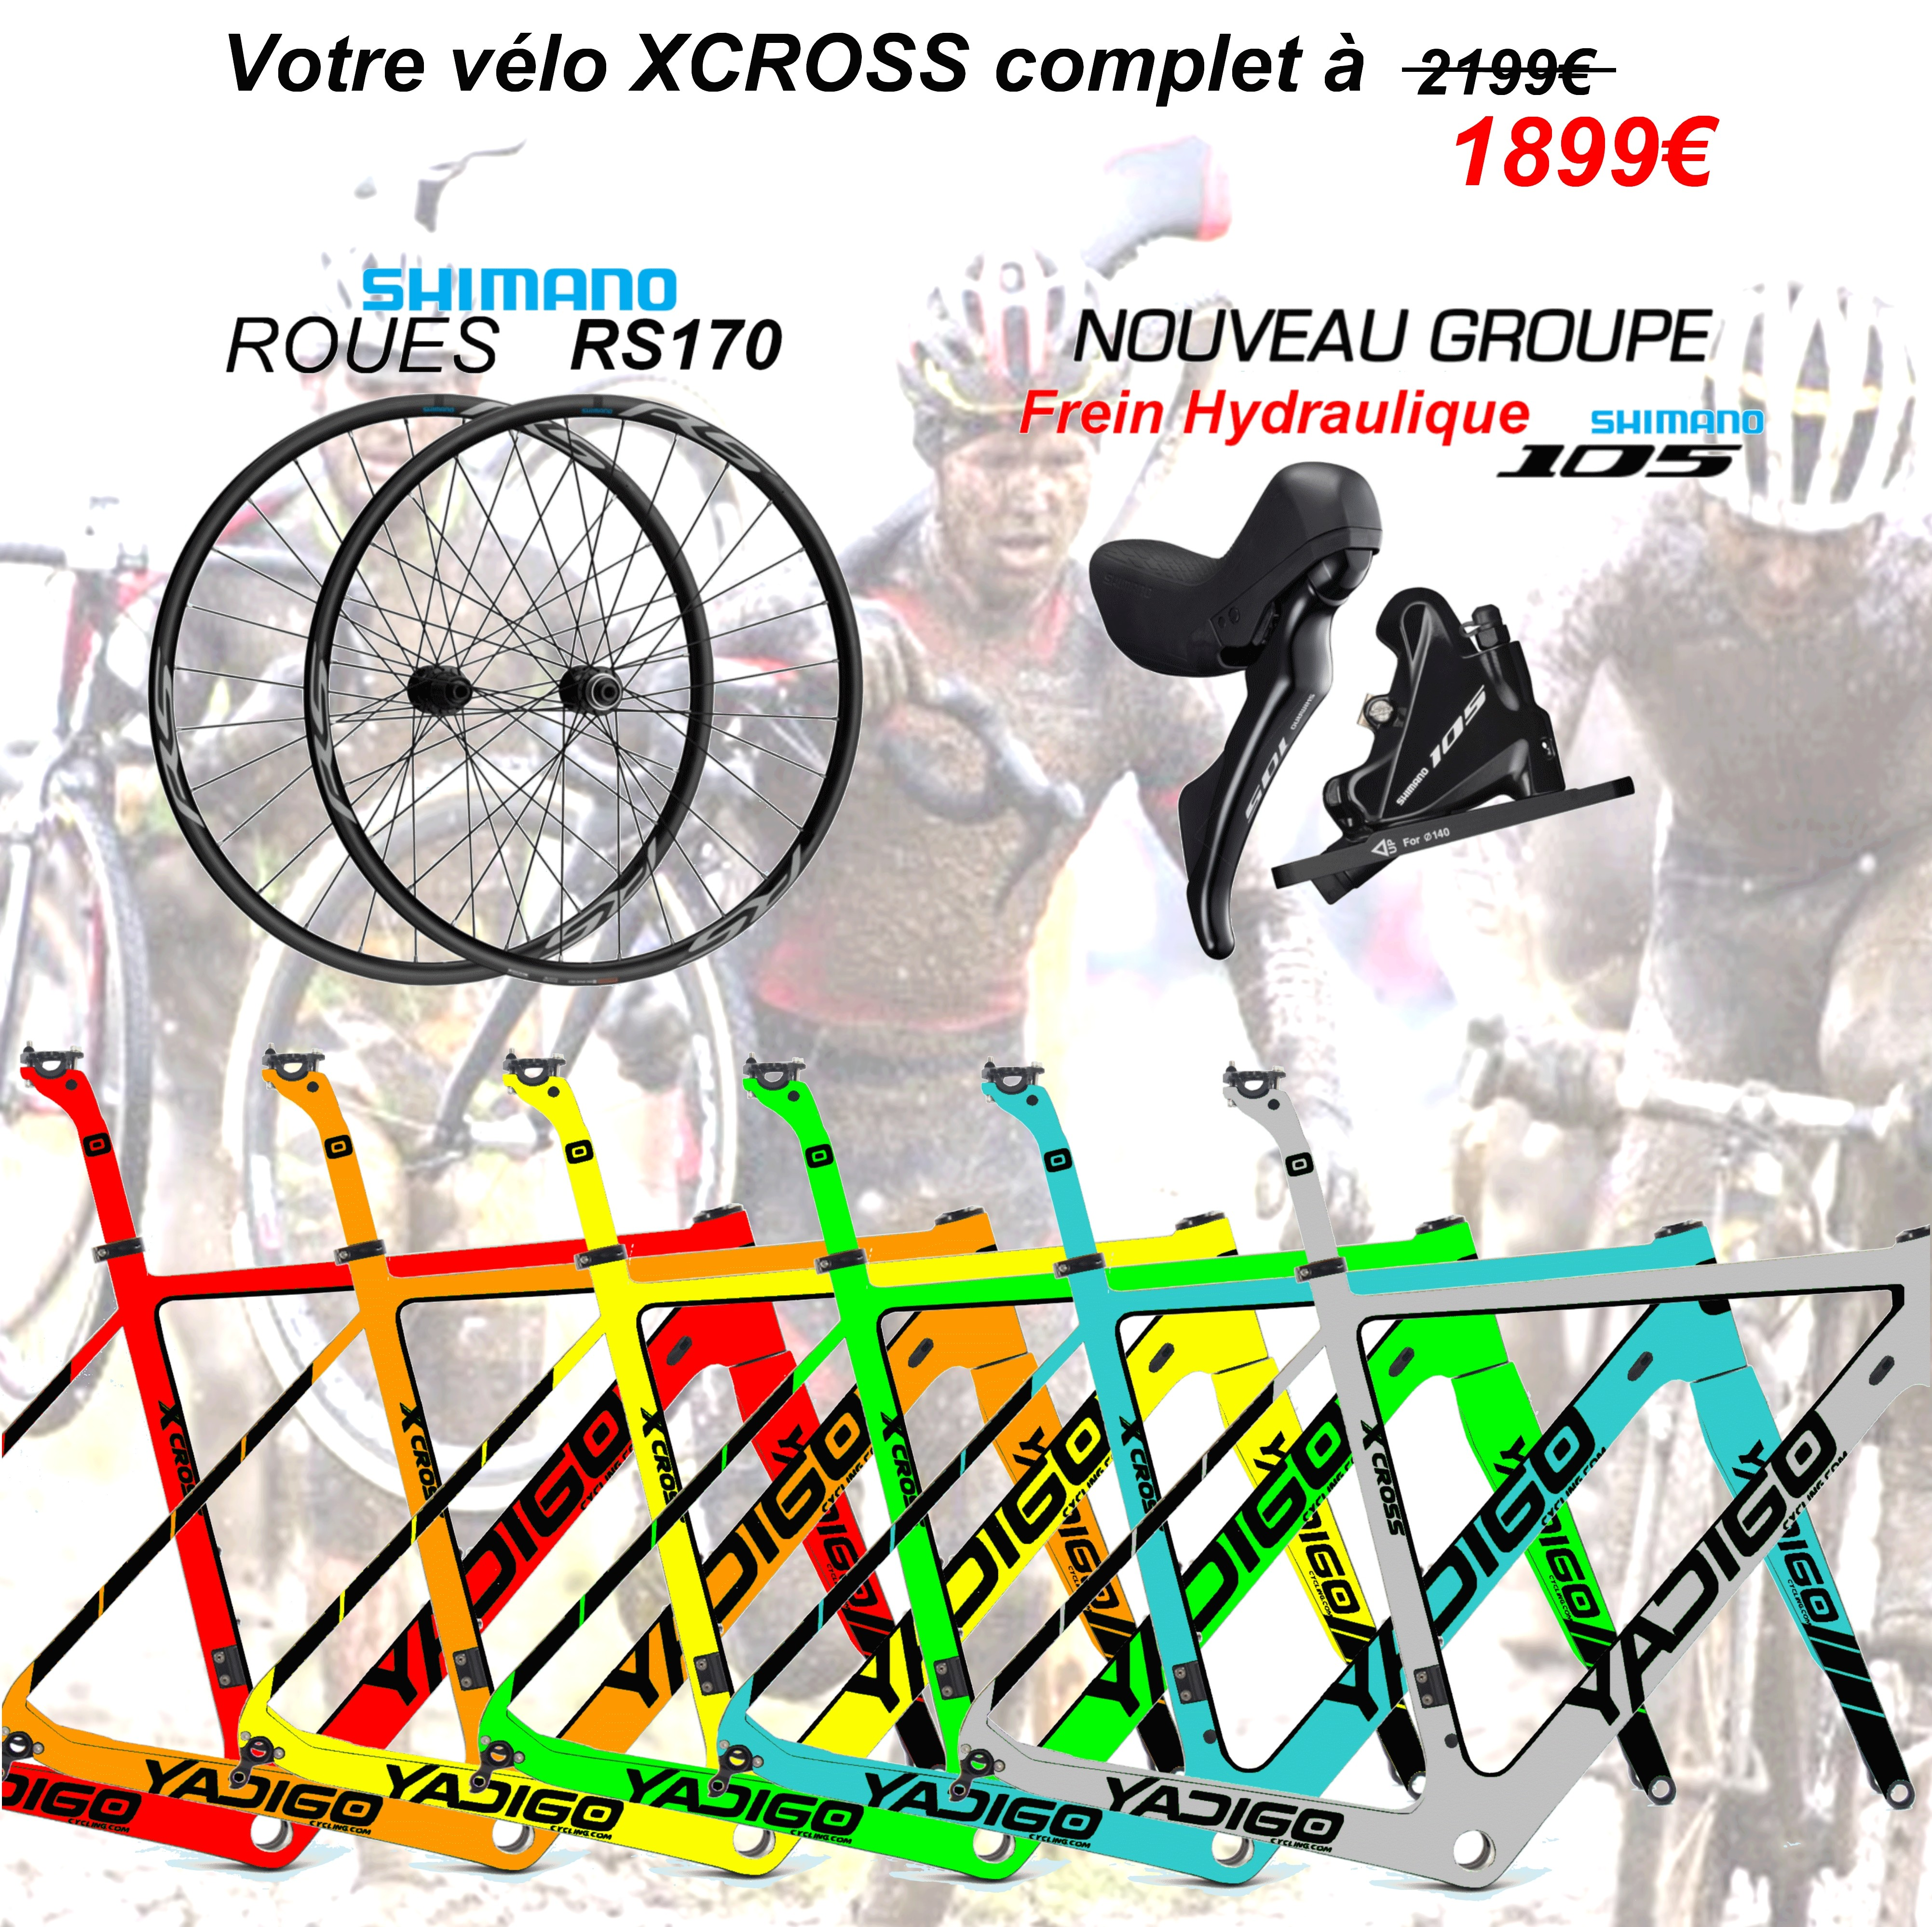 PROMO CYCLO CROSS